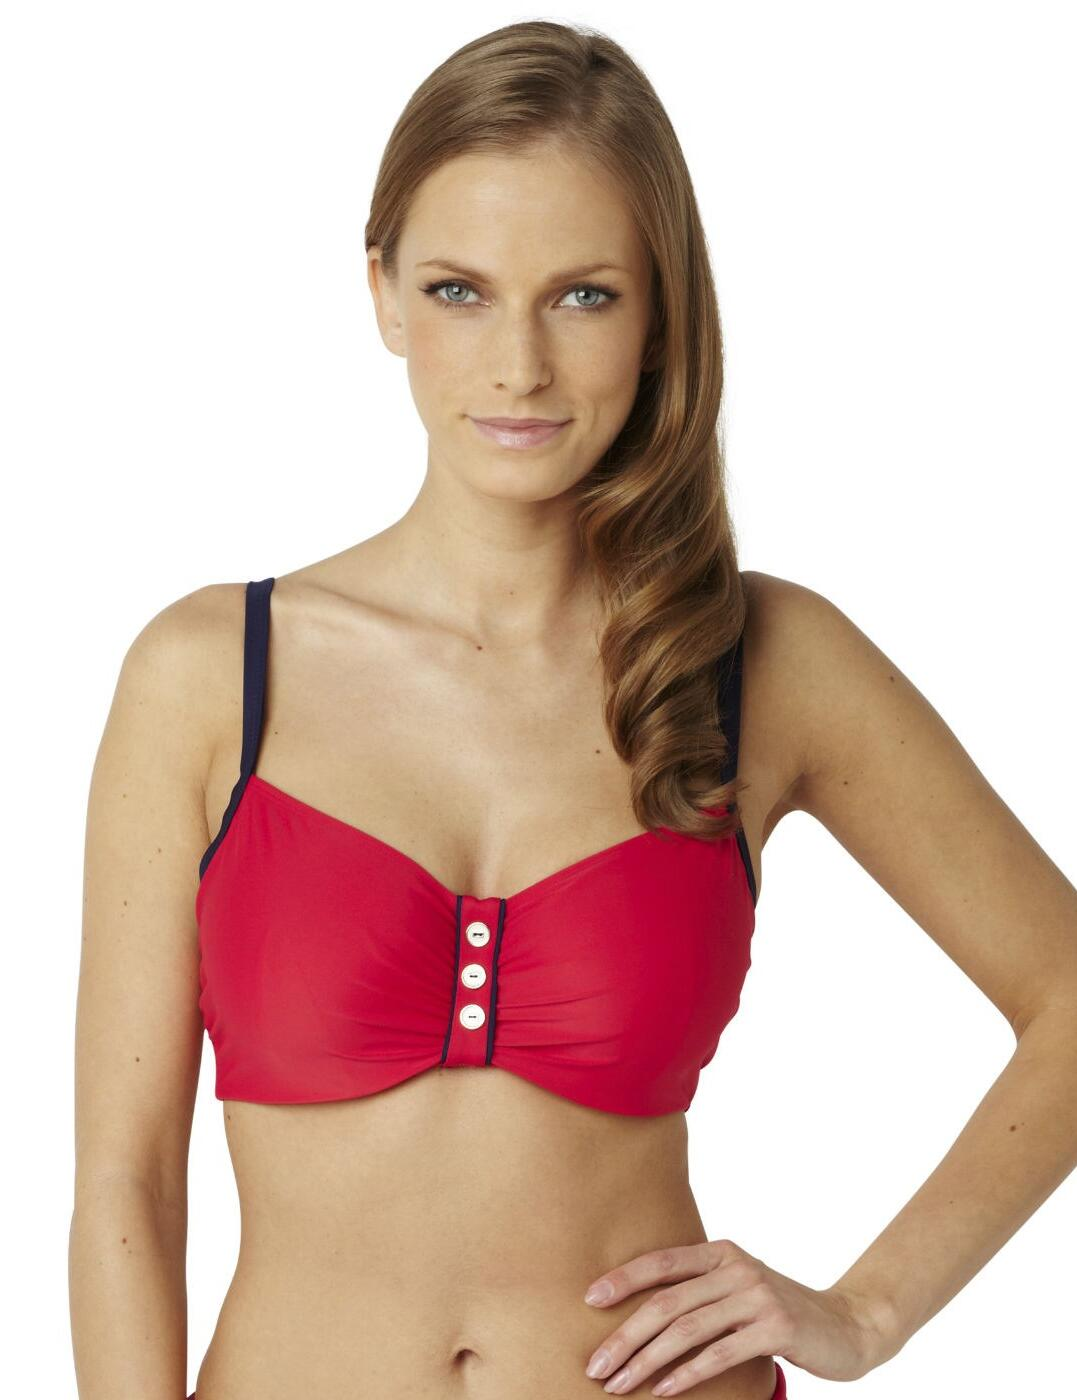 SW0642 Panache Veronica Balcony Bikini Top - SW0642 Red/Navy